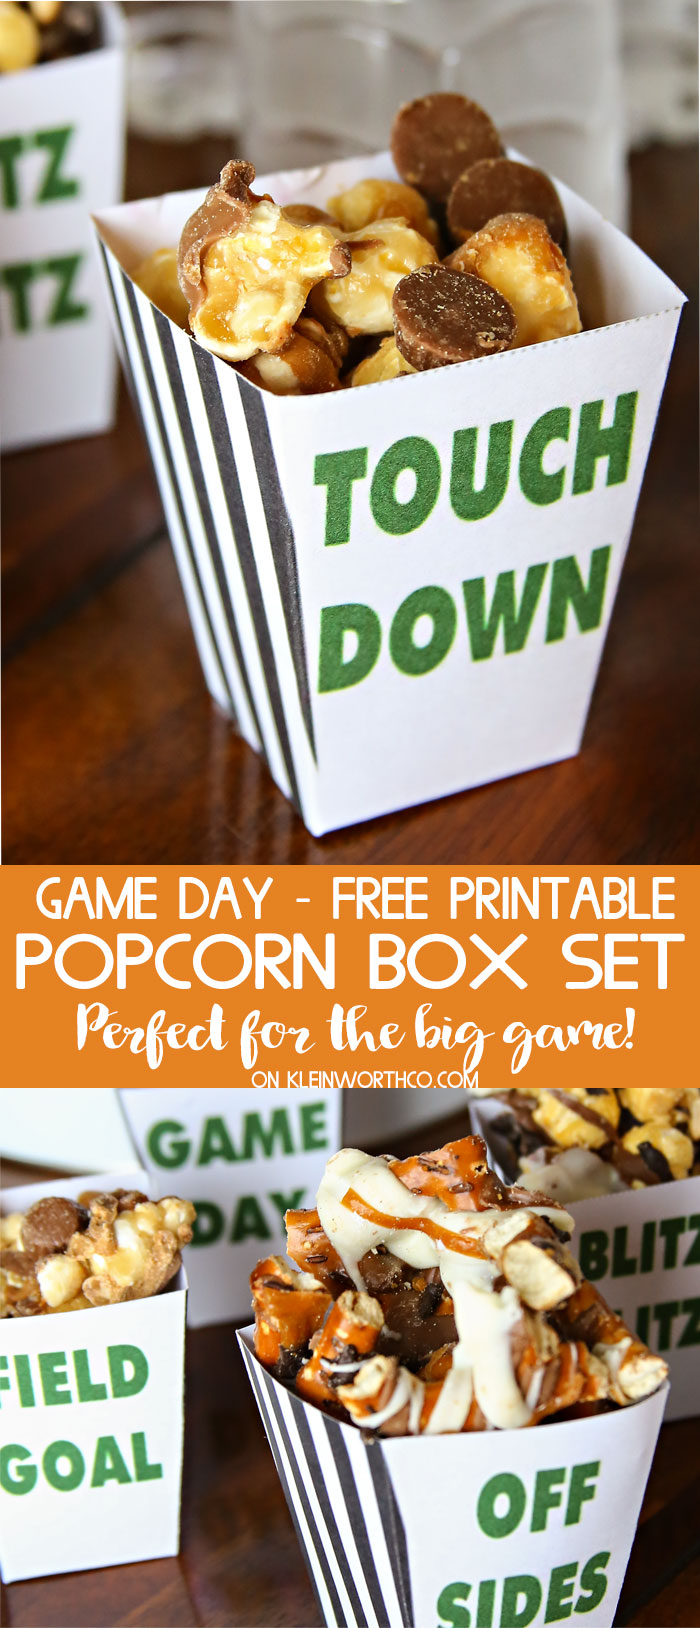 Game Day Popcorn Box Set